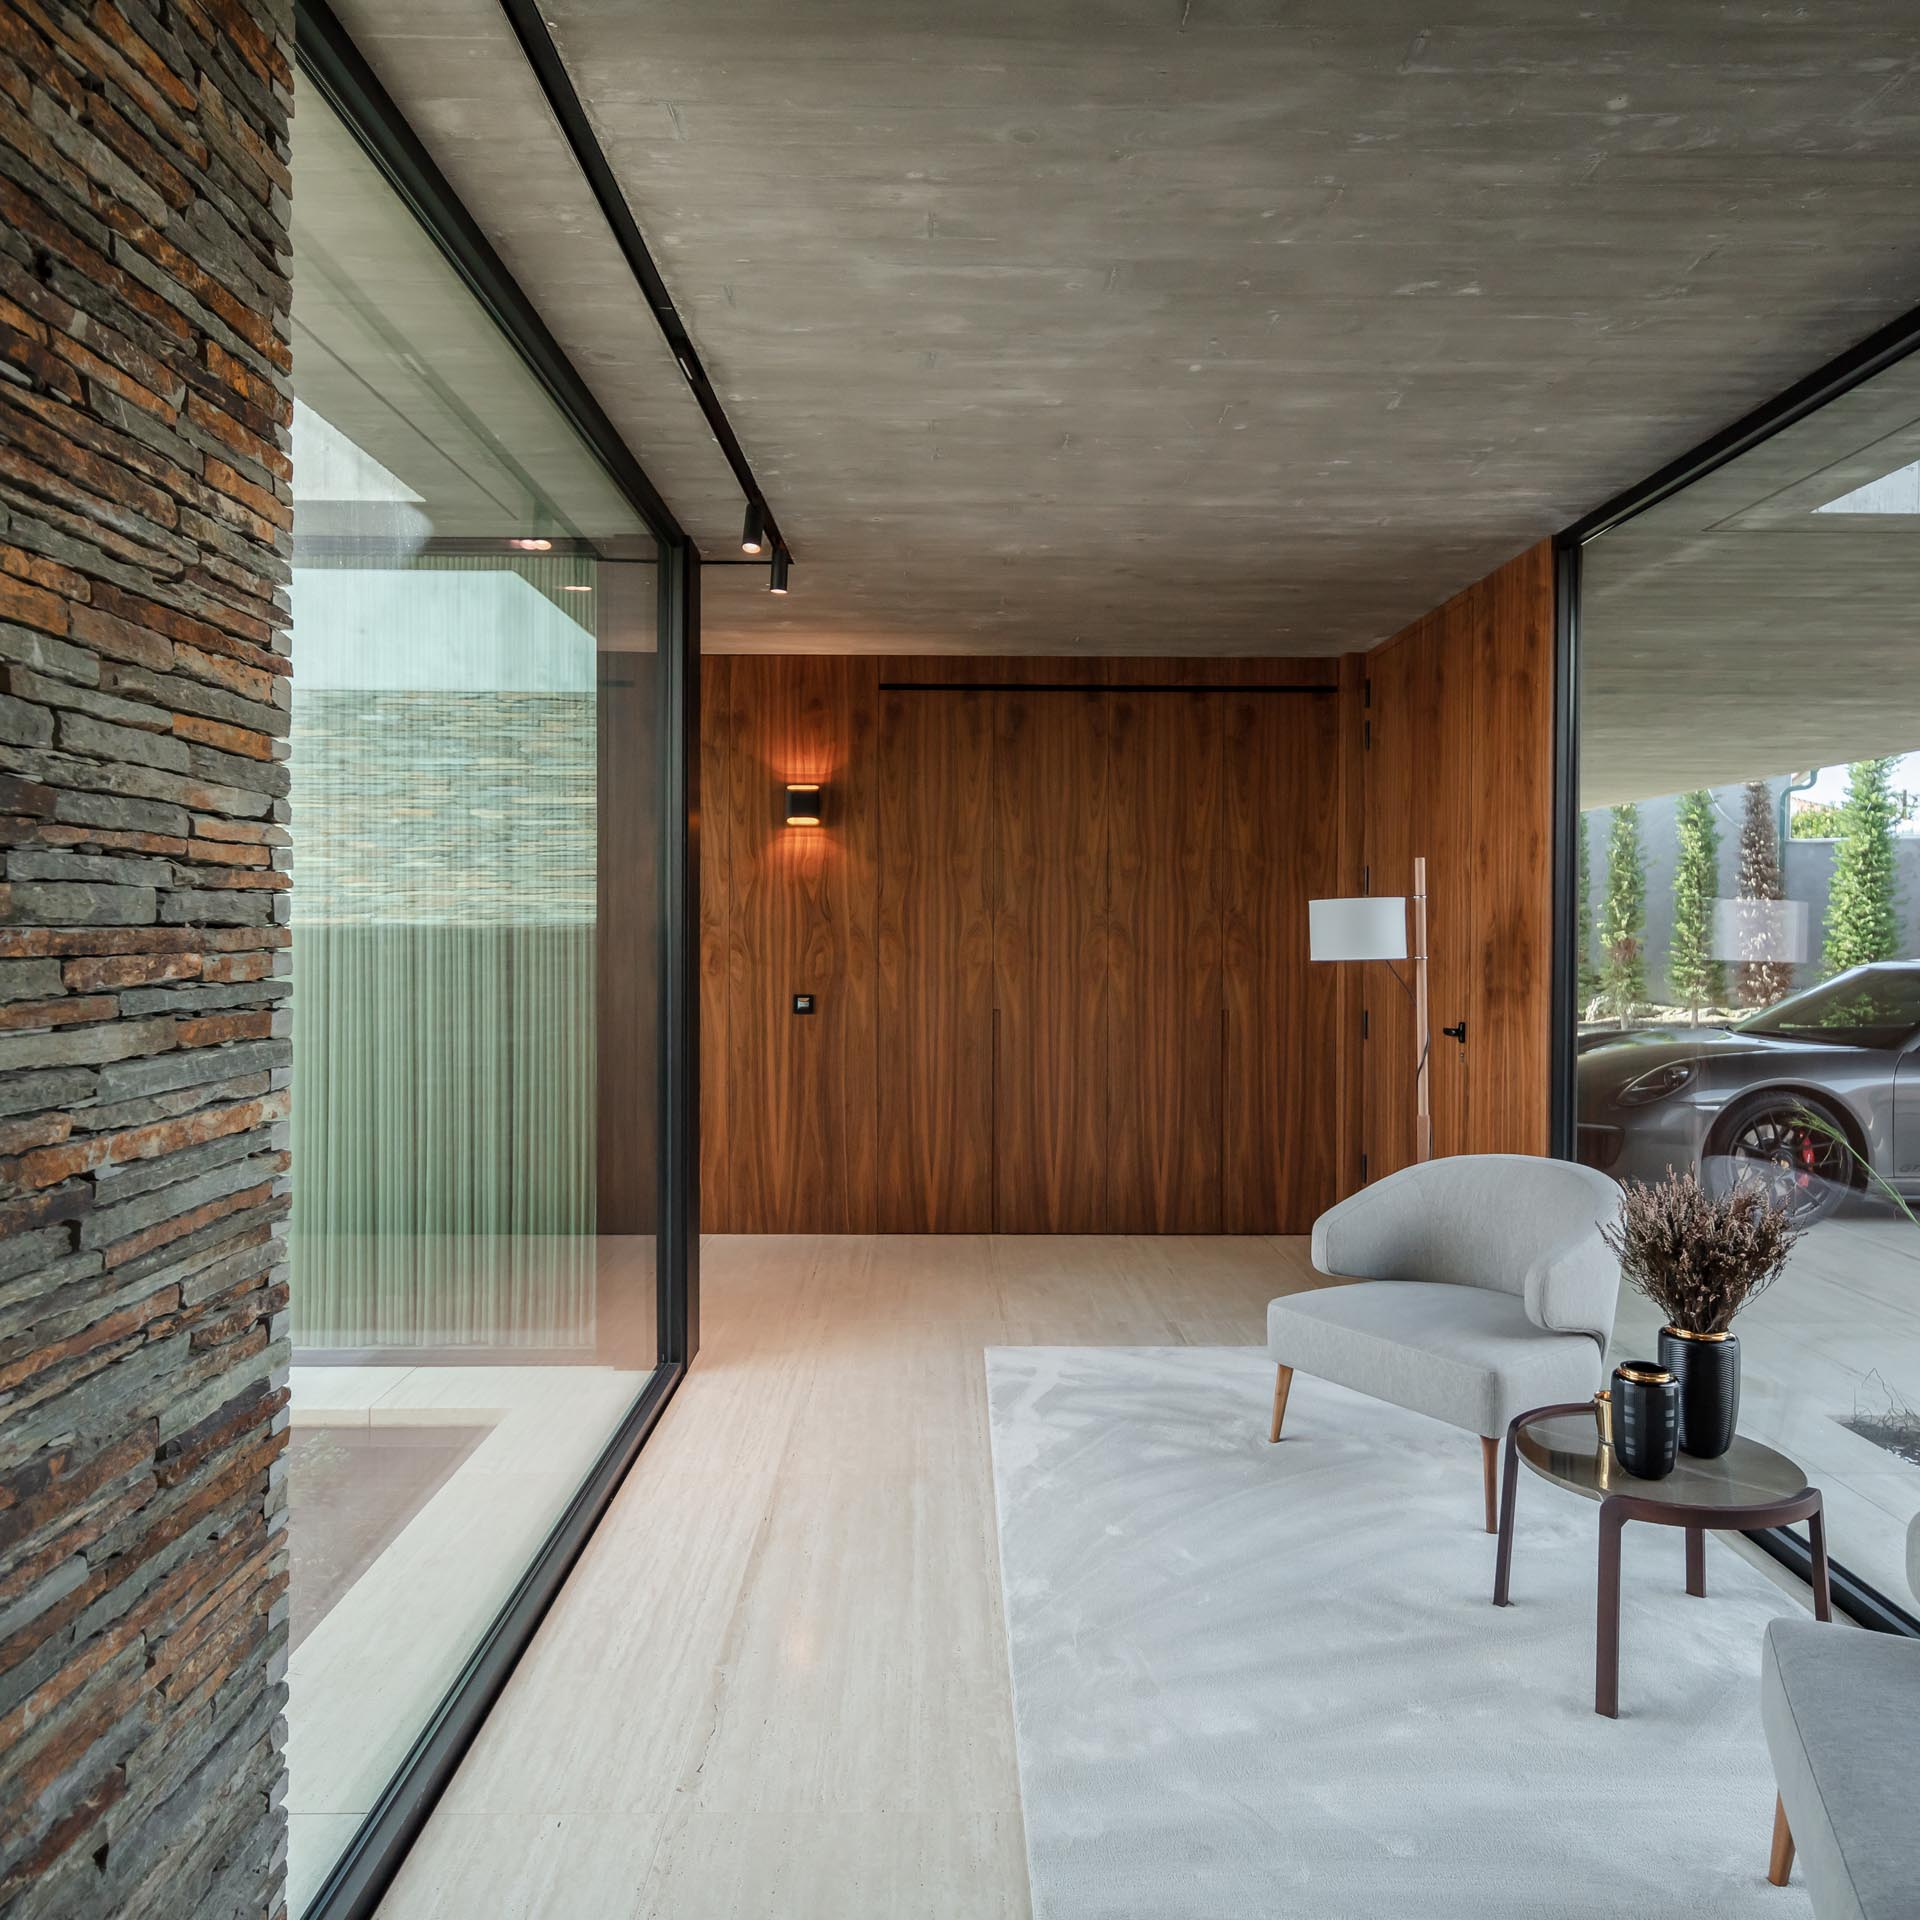 A modern entryway includes a small sitting area with floor to ceiling glass walls on either side.